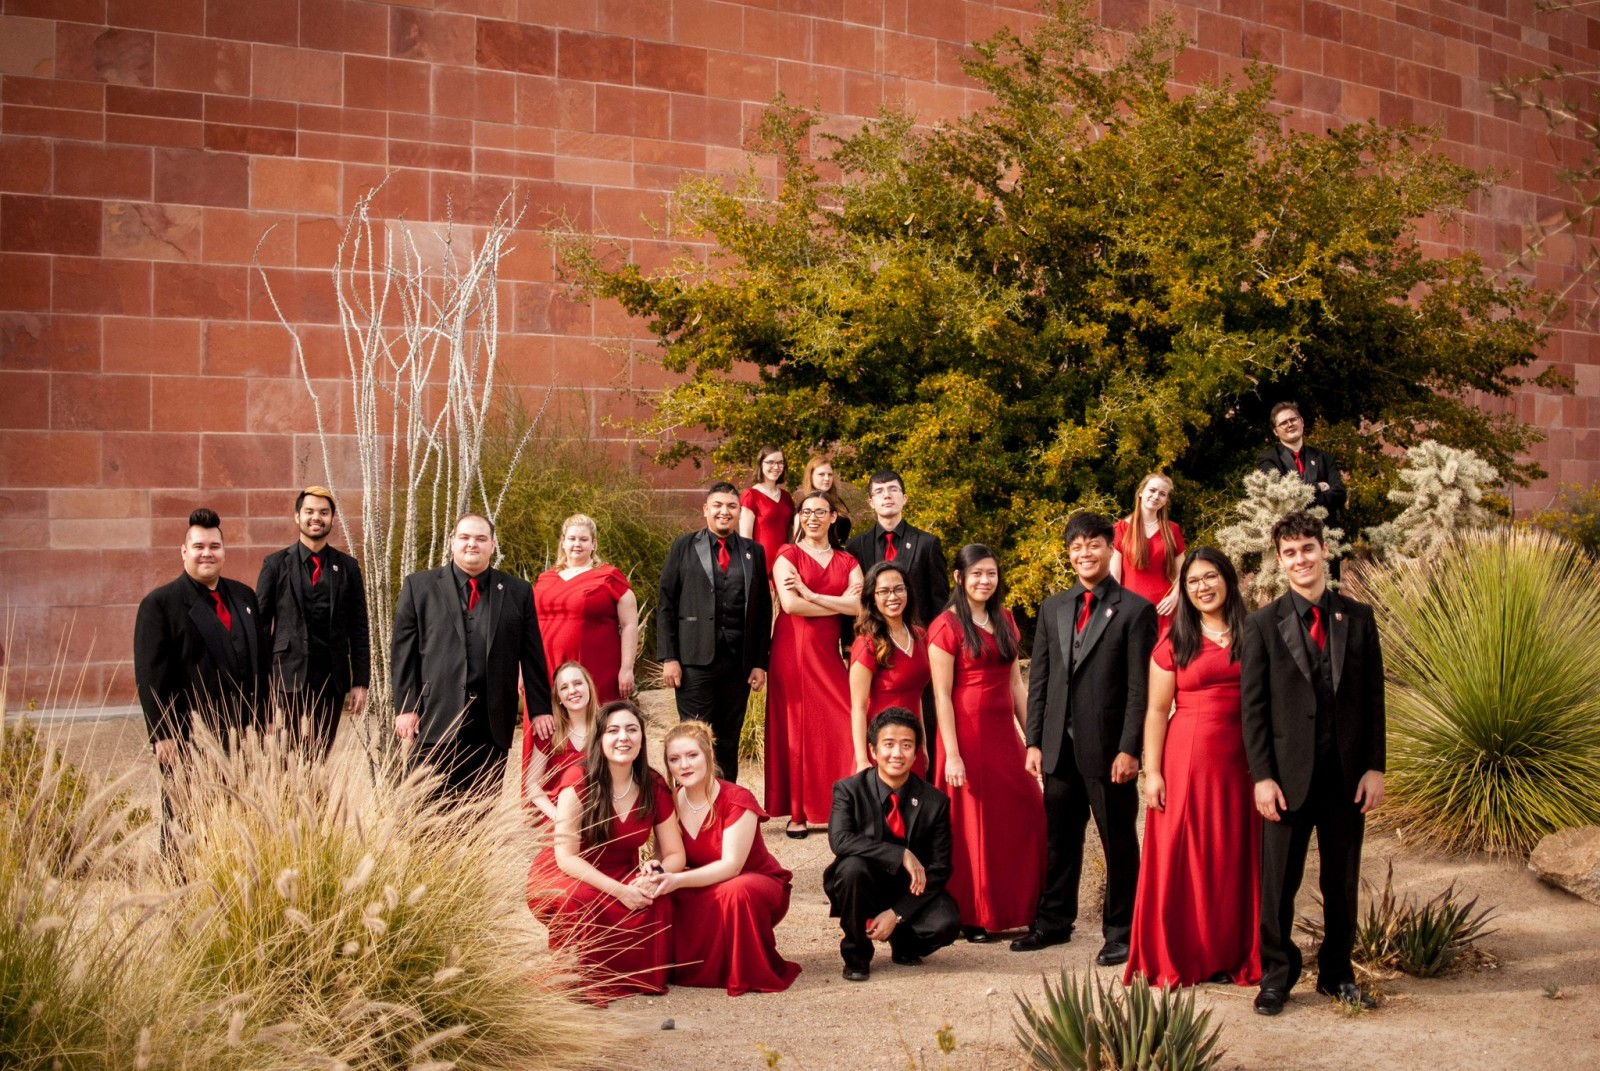 University of Nevada, Las Vegas Chamber Chorale